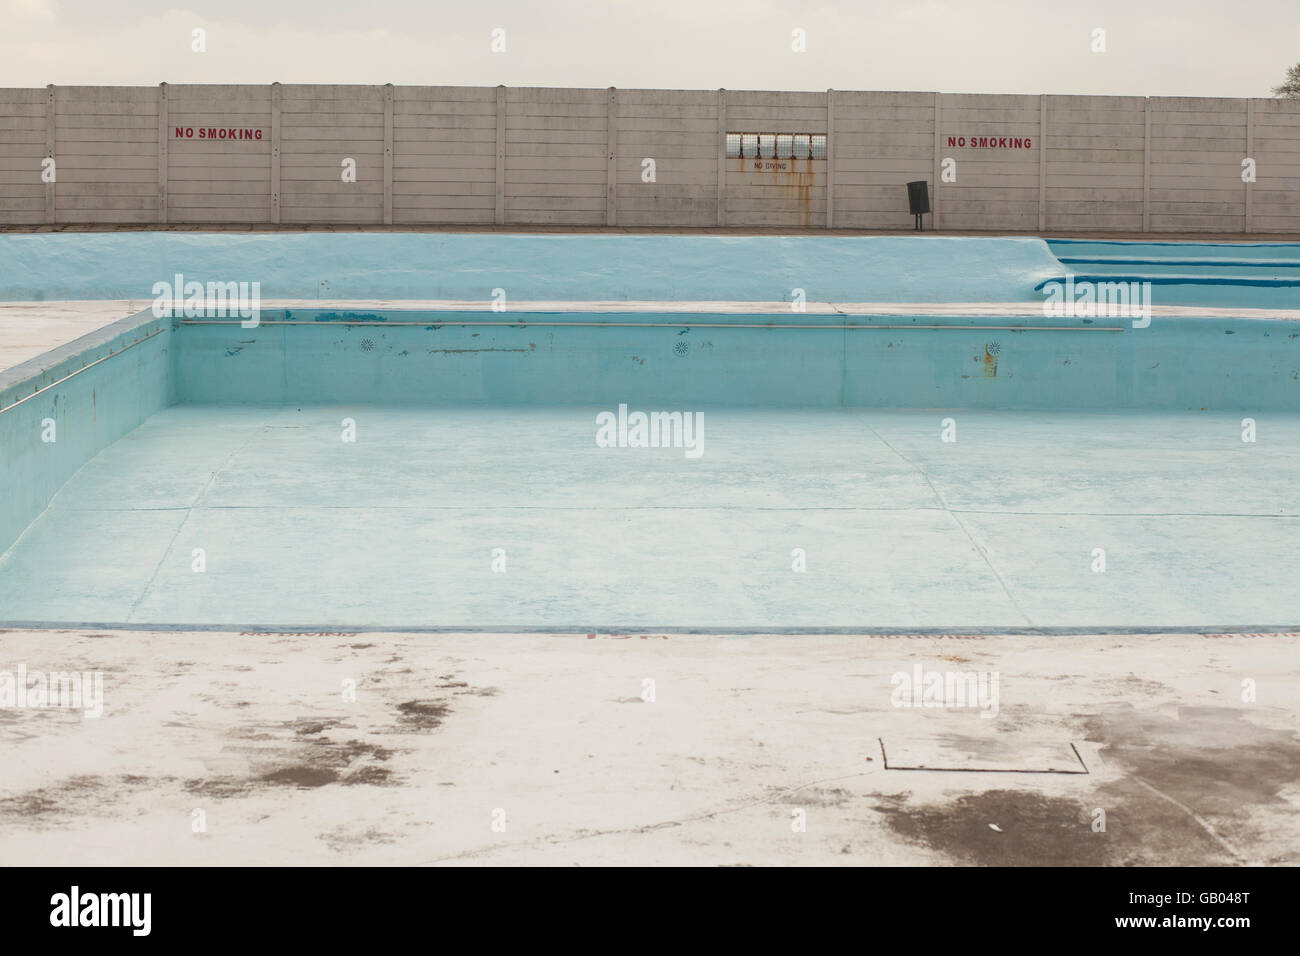 The Strand swimming pool in Gillingham drained for the winter. - Stock Image